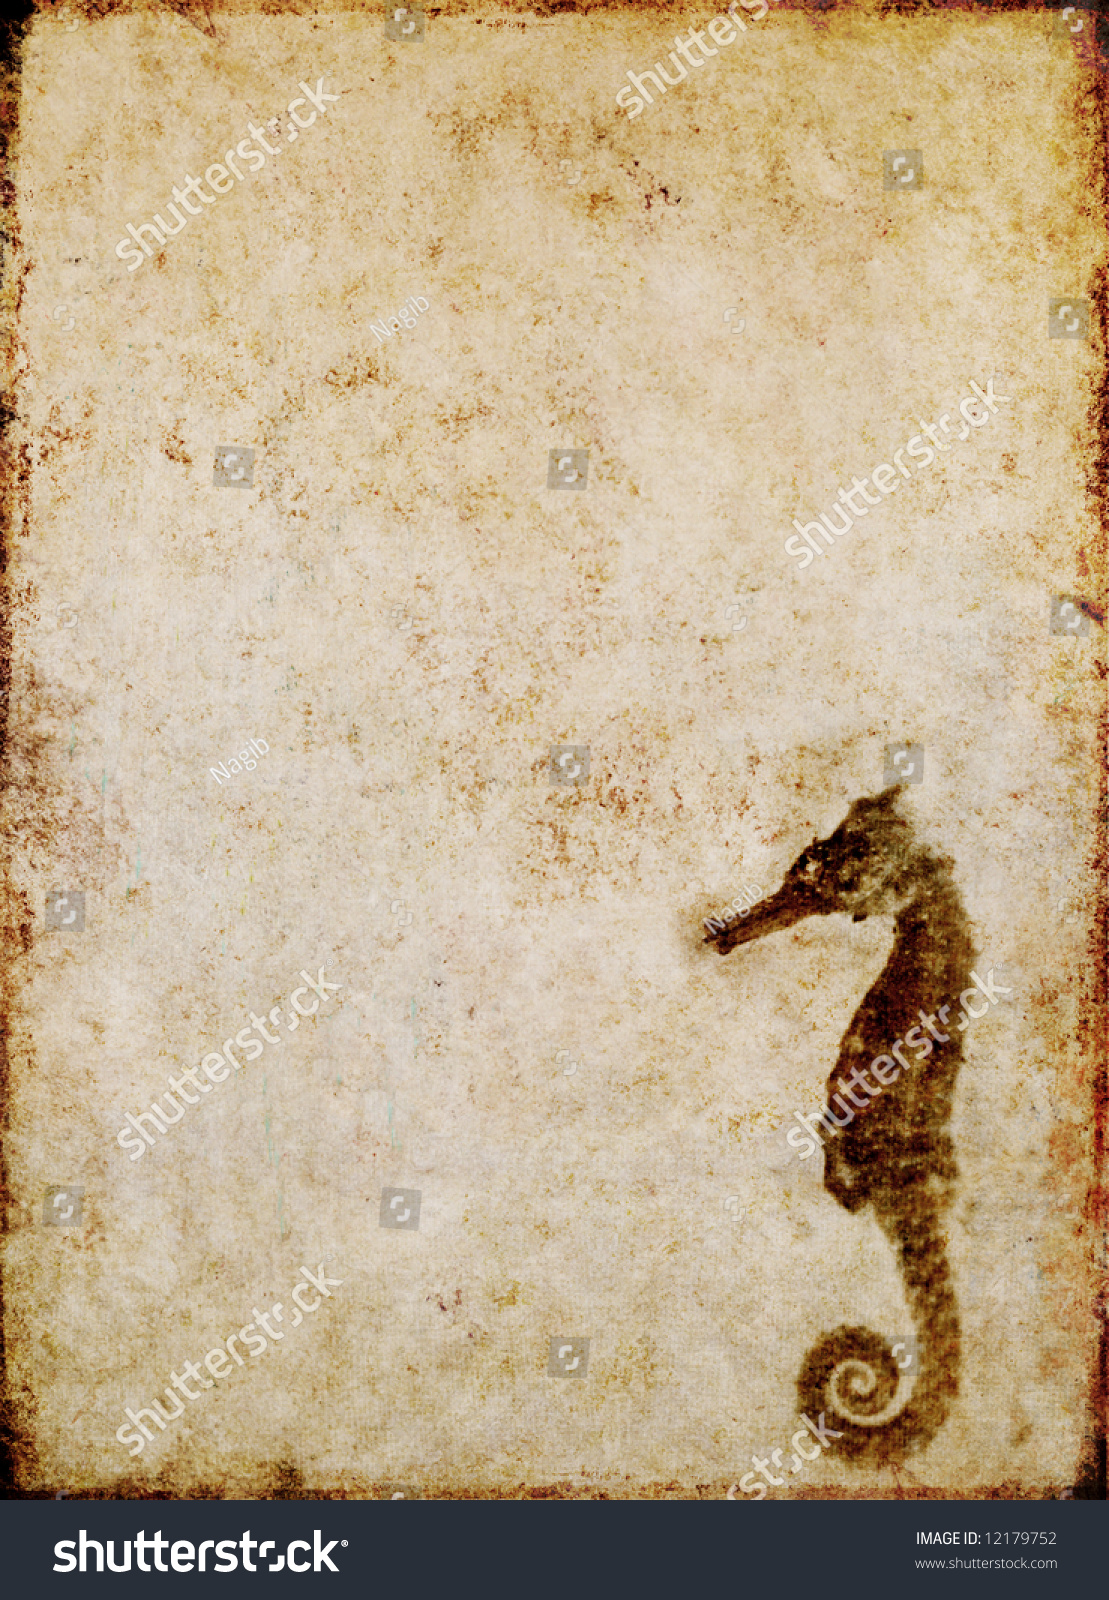 Brown Background Image With Interesting Texture, Close-Up ... - photo#24